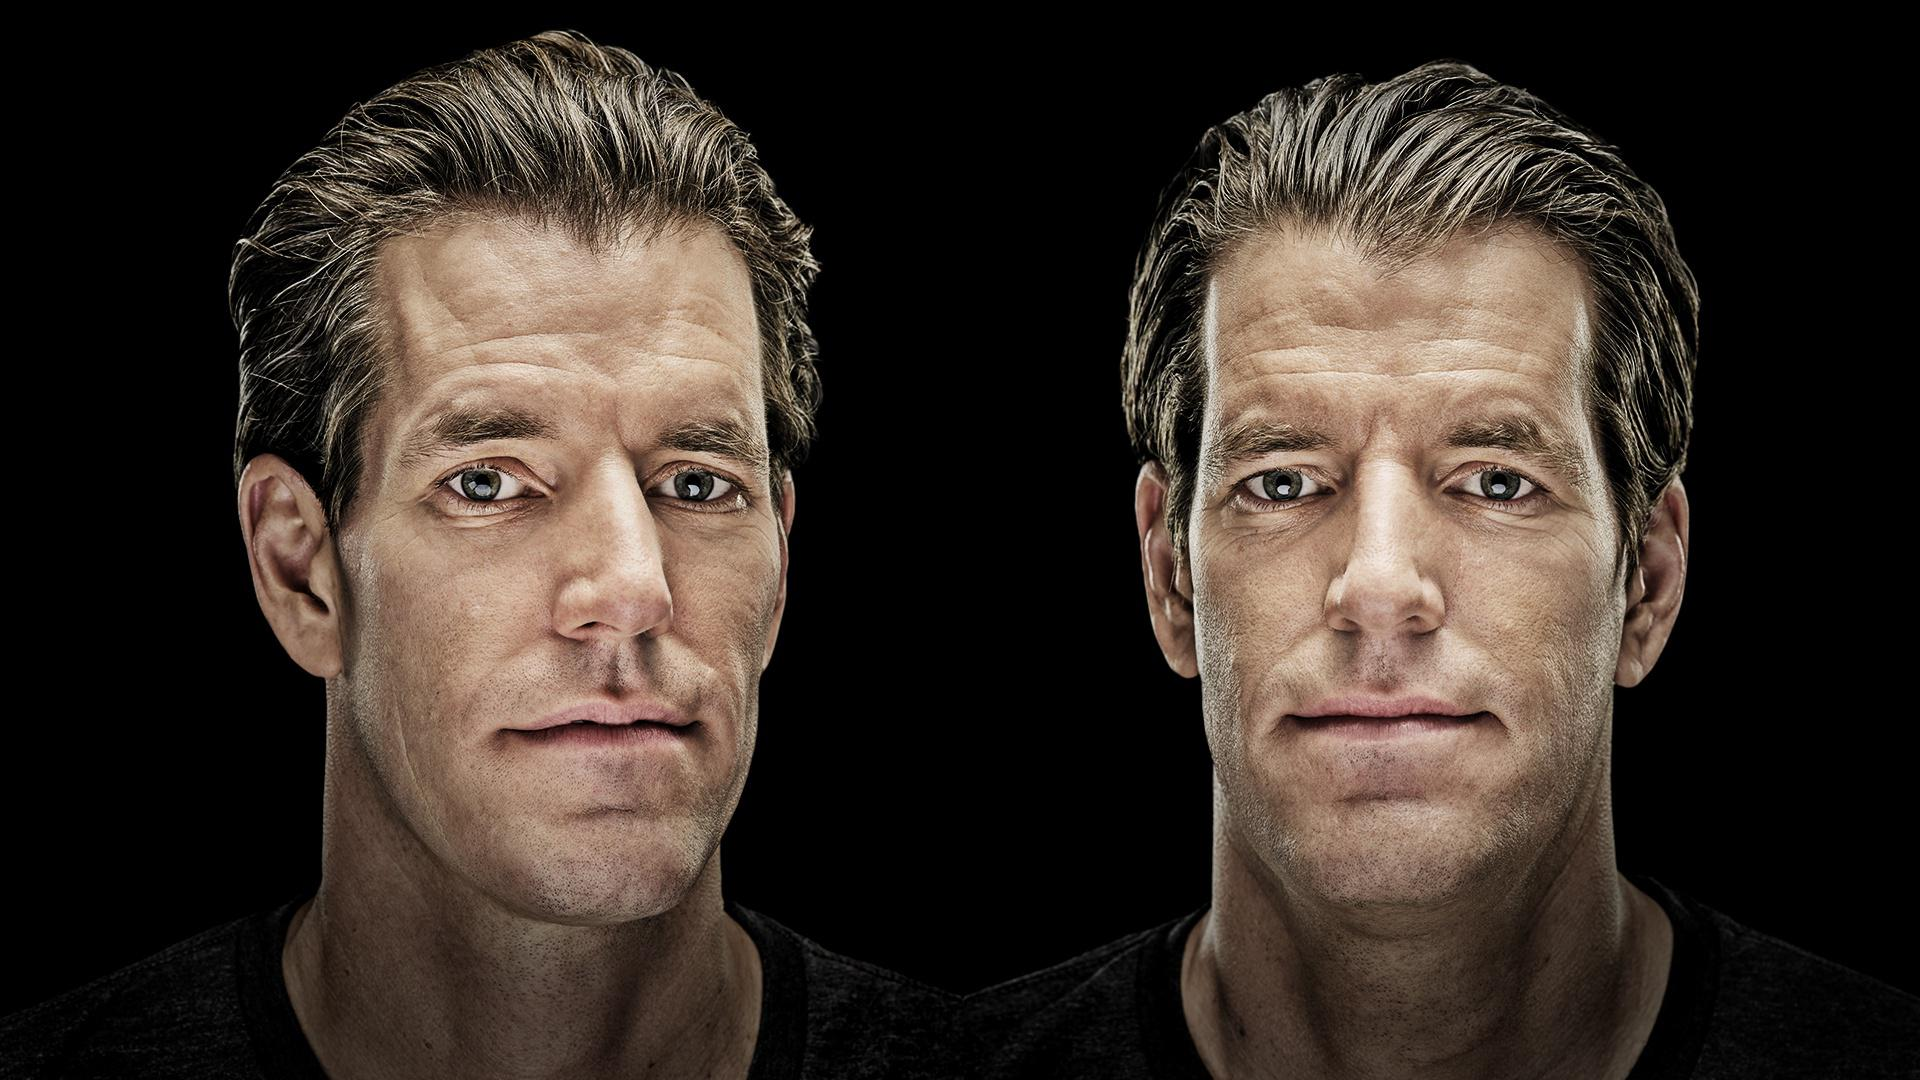 Pictured: The Winklevoss twins, whose big bet on Bitcoin has made them into billionaires.